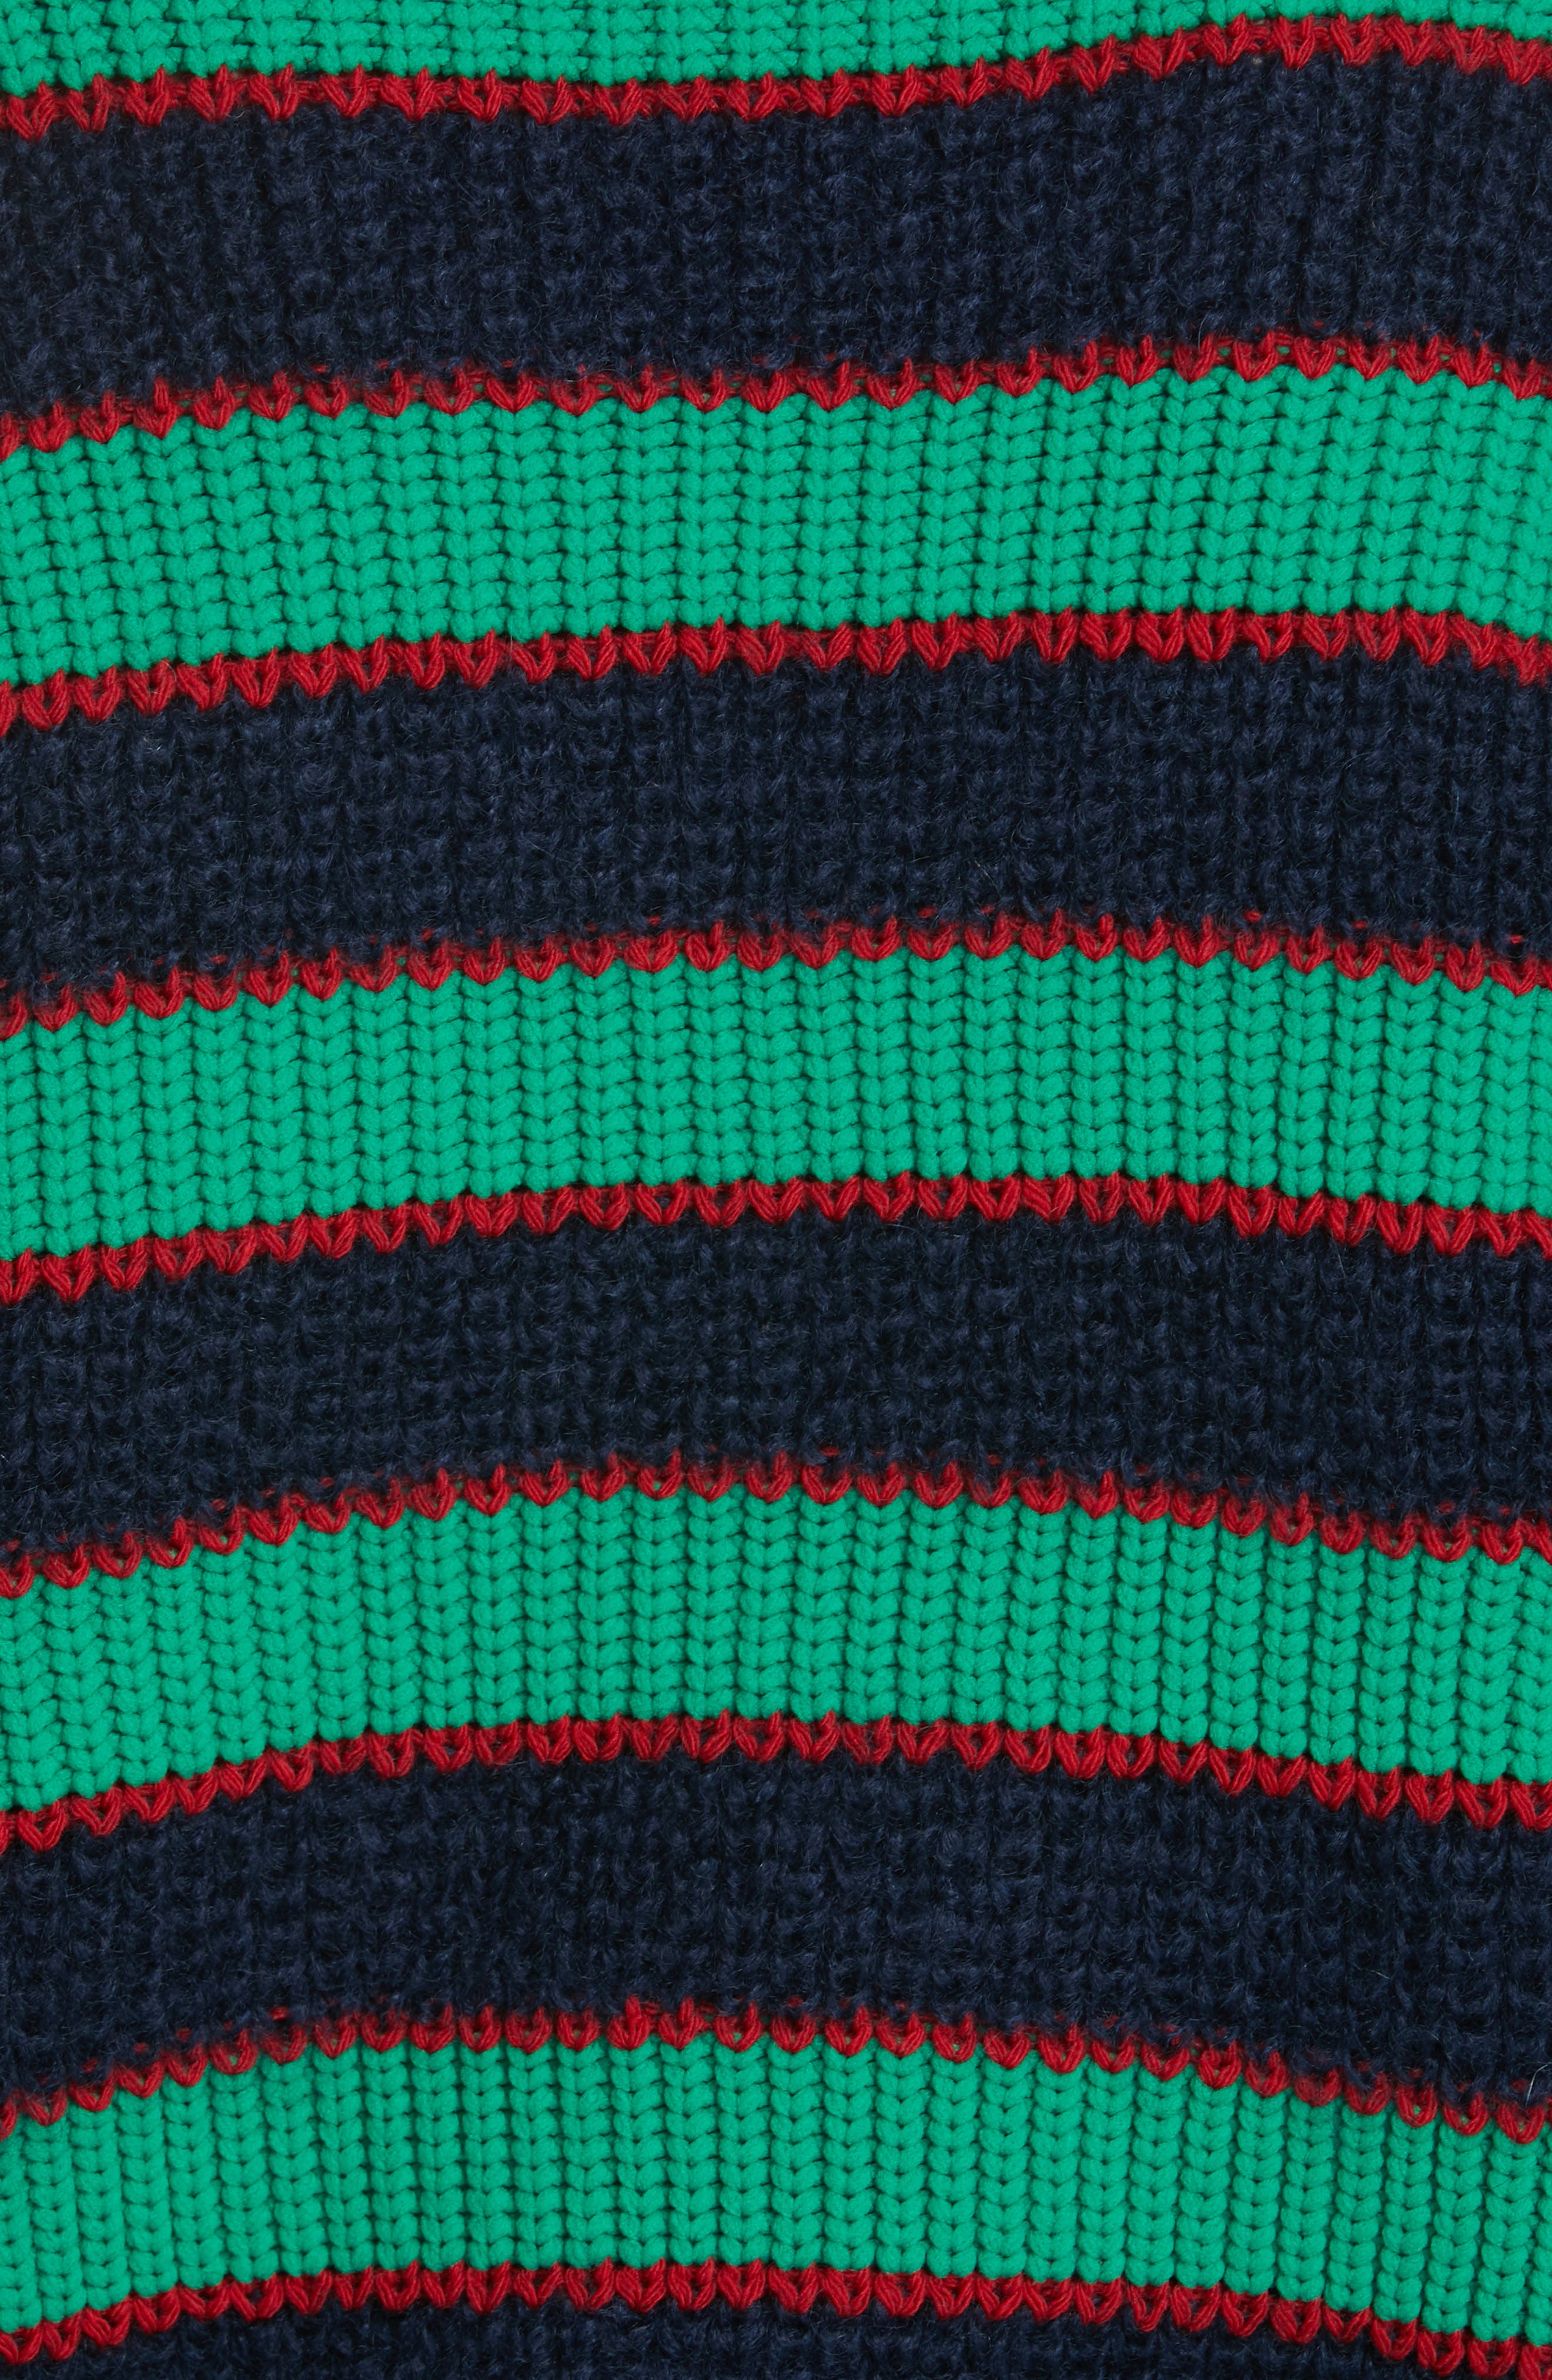 Colorblock Stripe Mohair & Wool Blend Sweater,                             Alternate thumbnail 5, color,                             MULTICOLOR